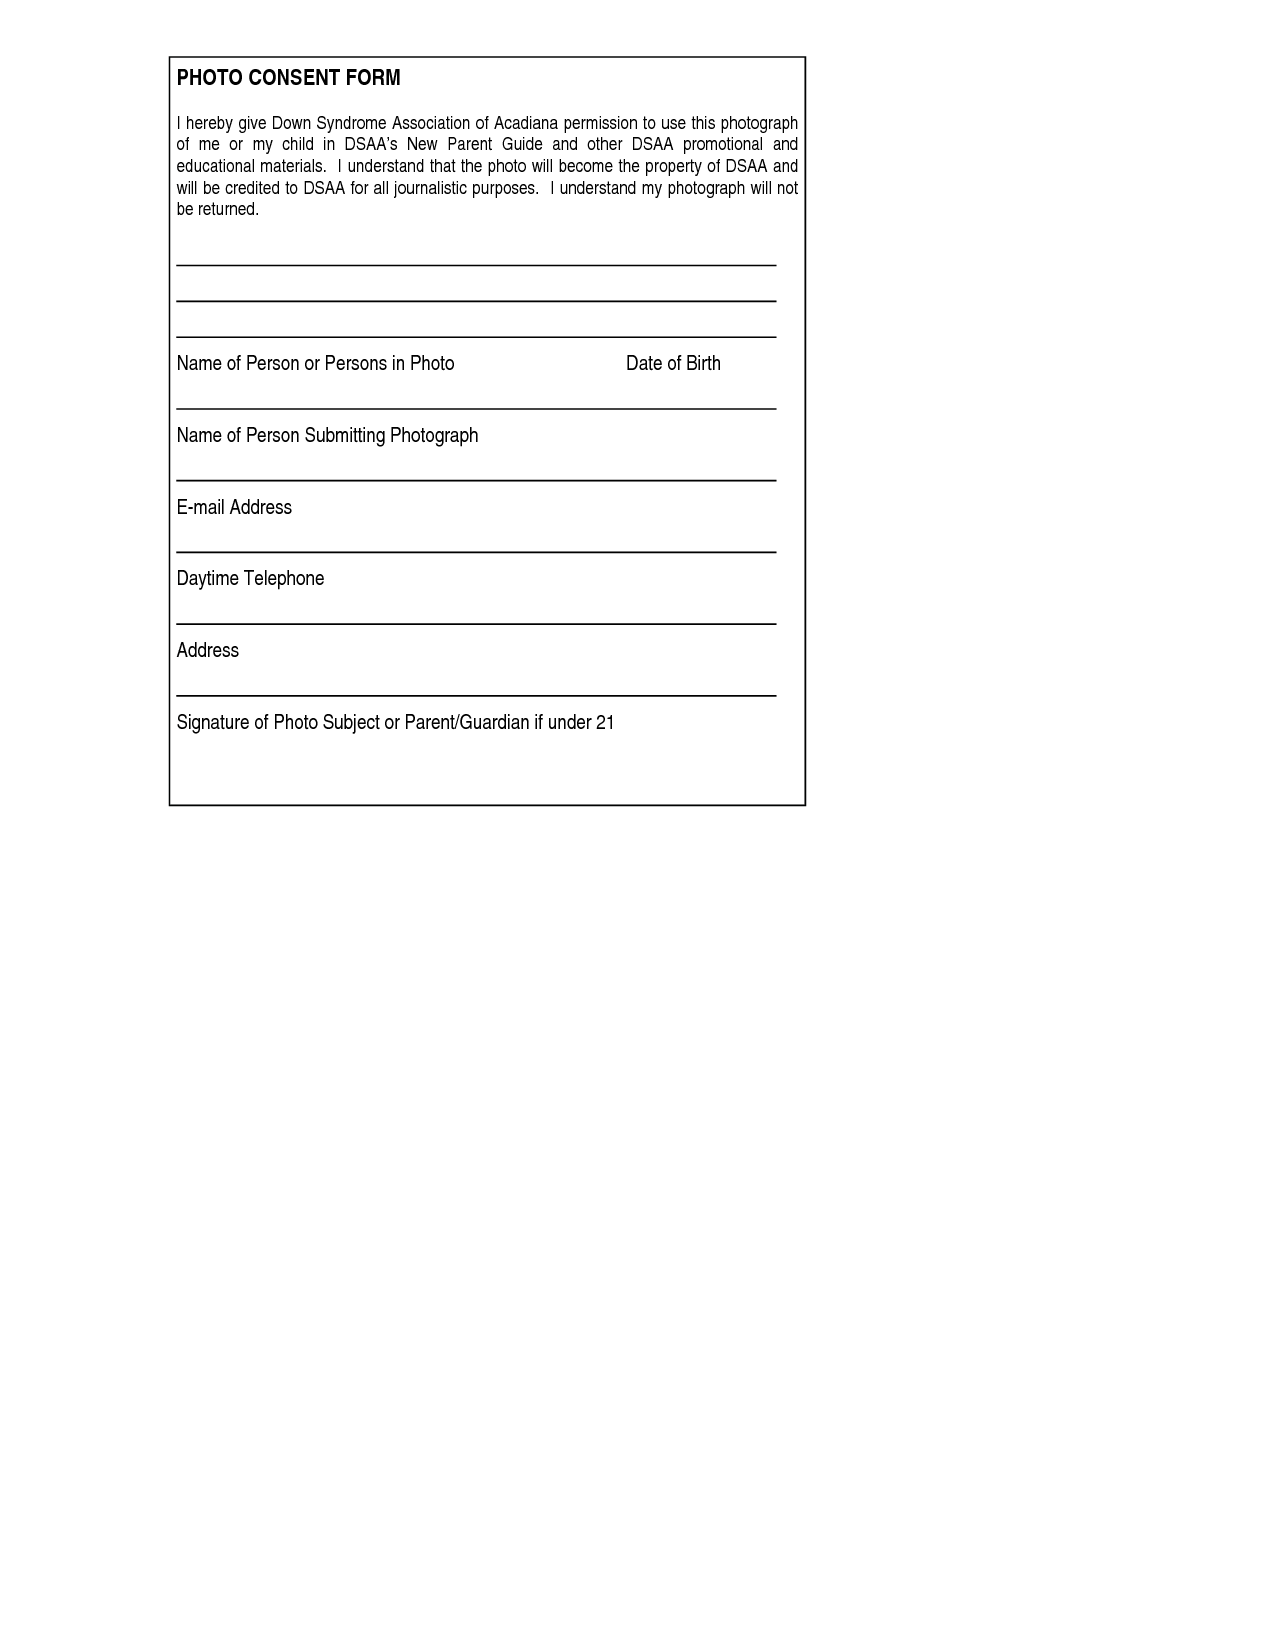 photography permission form template - down syndrome conferenceencyclopedia disease